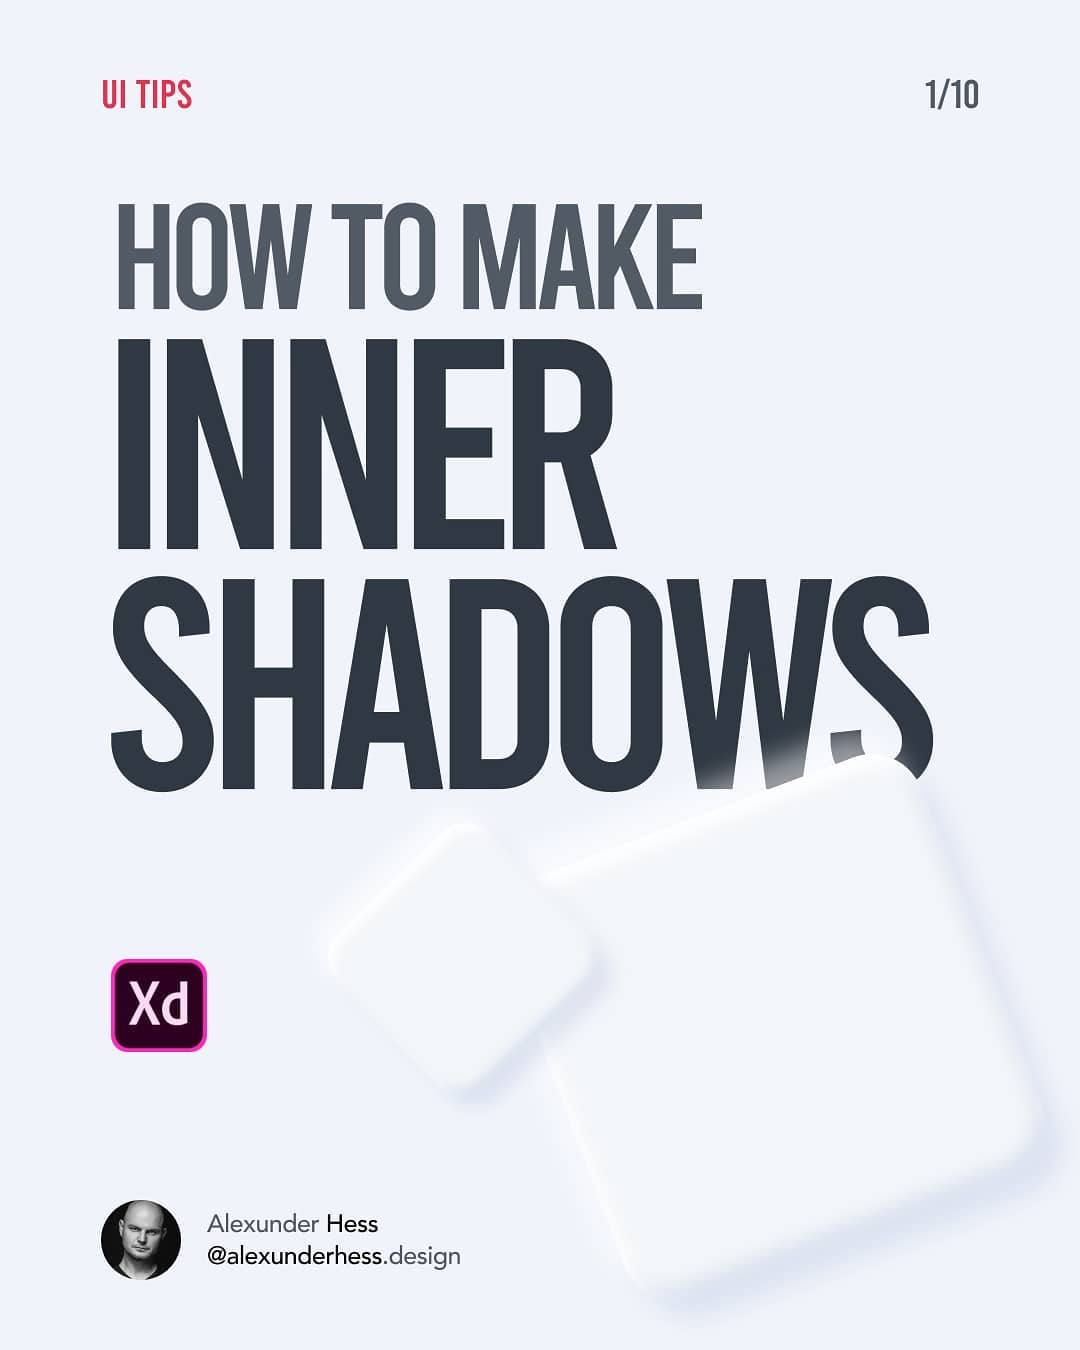 How to make inner shadows in Adobe XD